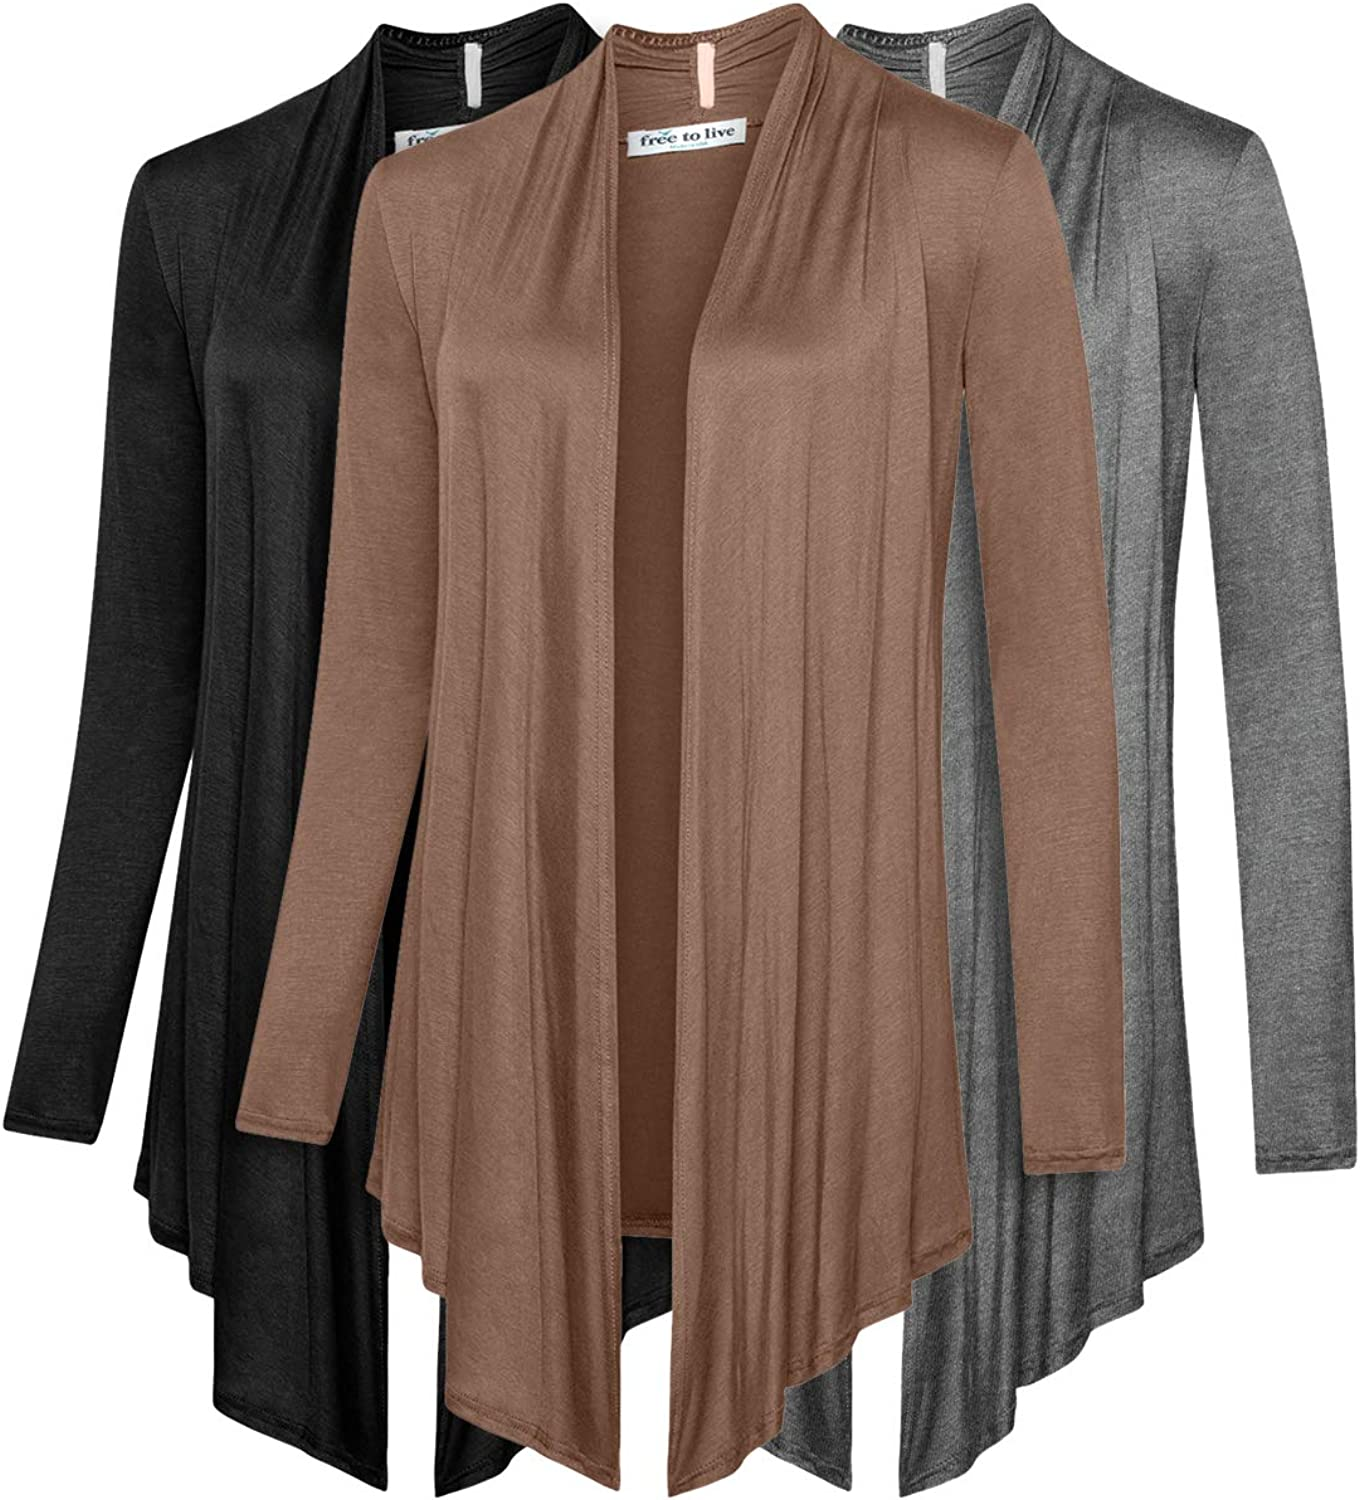 Free to Live 3 Pack Women's Cardigan - Light Weight Sweater with Open Front